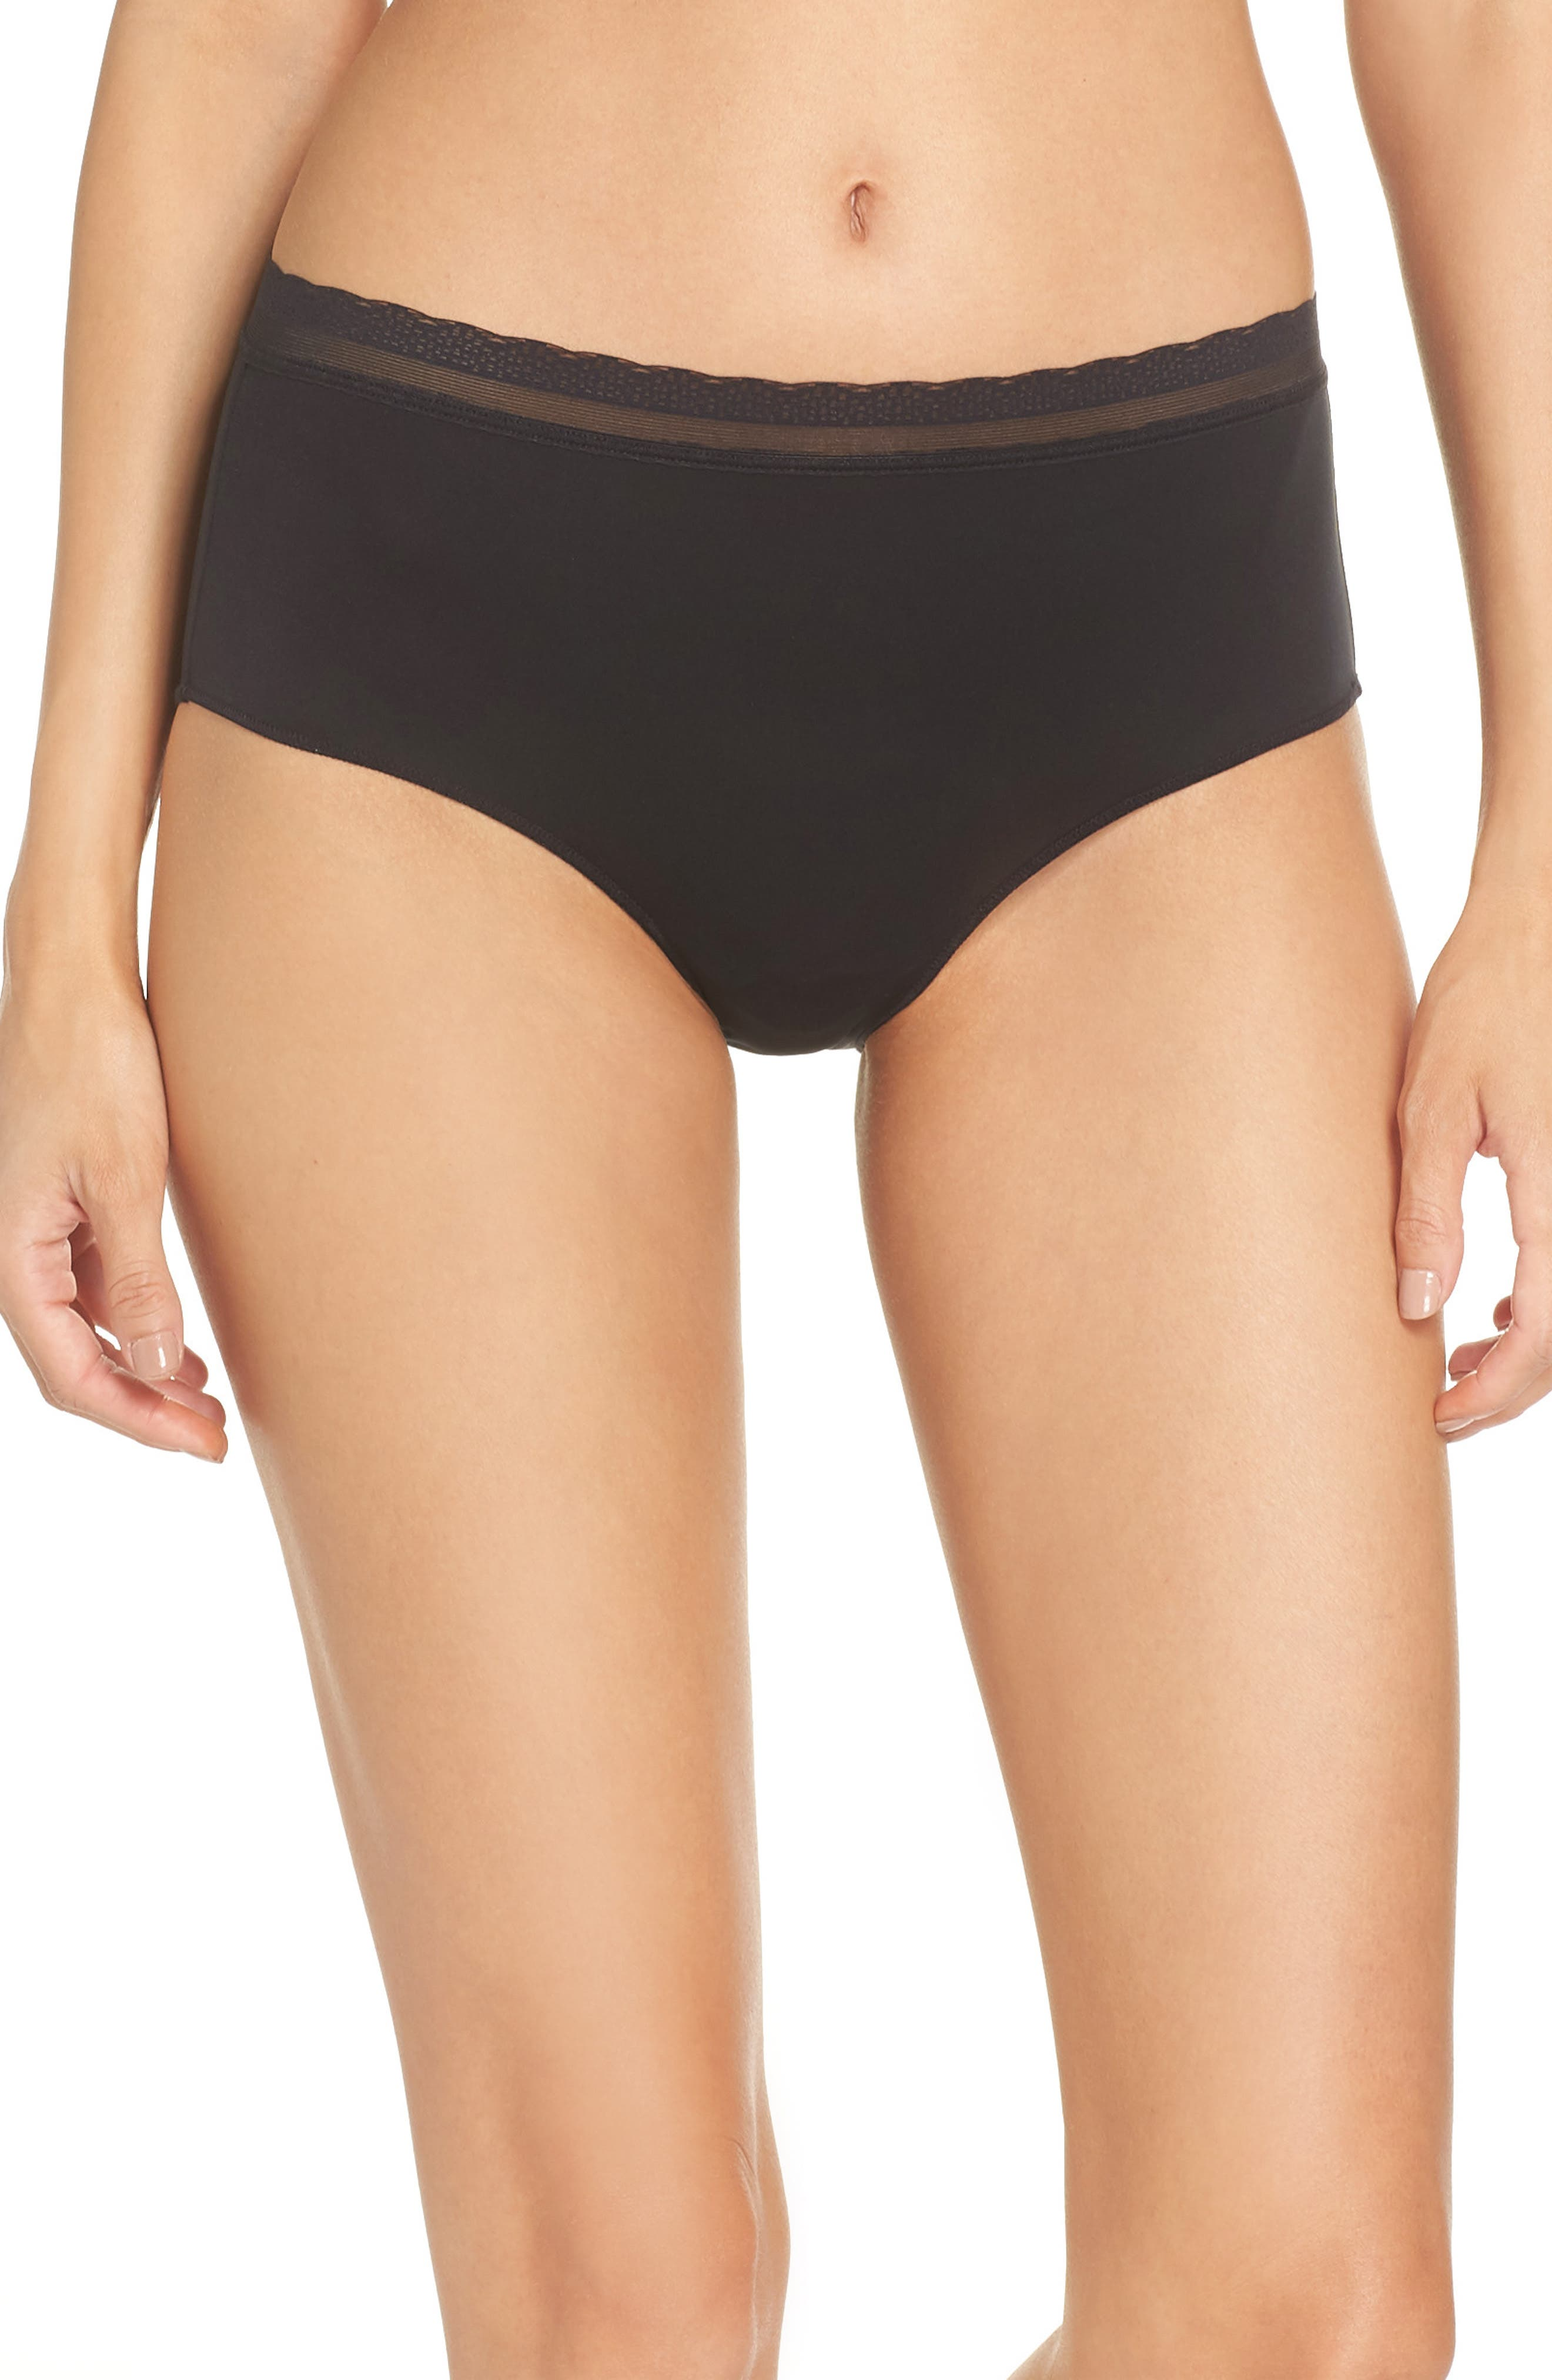 Next to Nothing Hipster Briefs,                         Main,                         color, BLACK